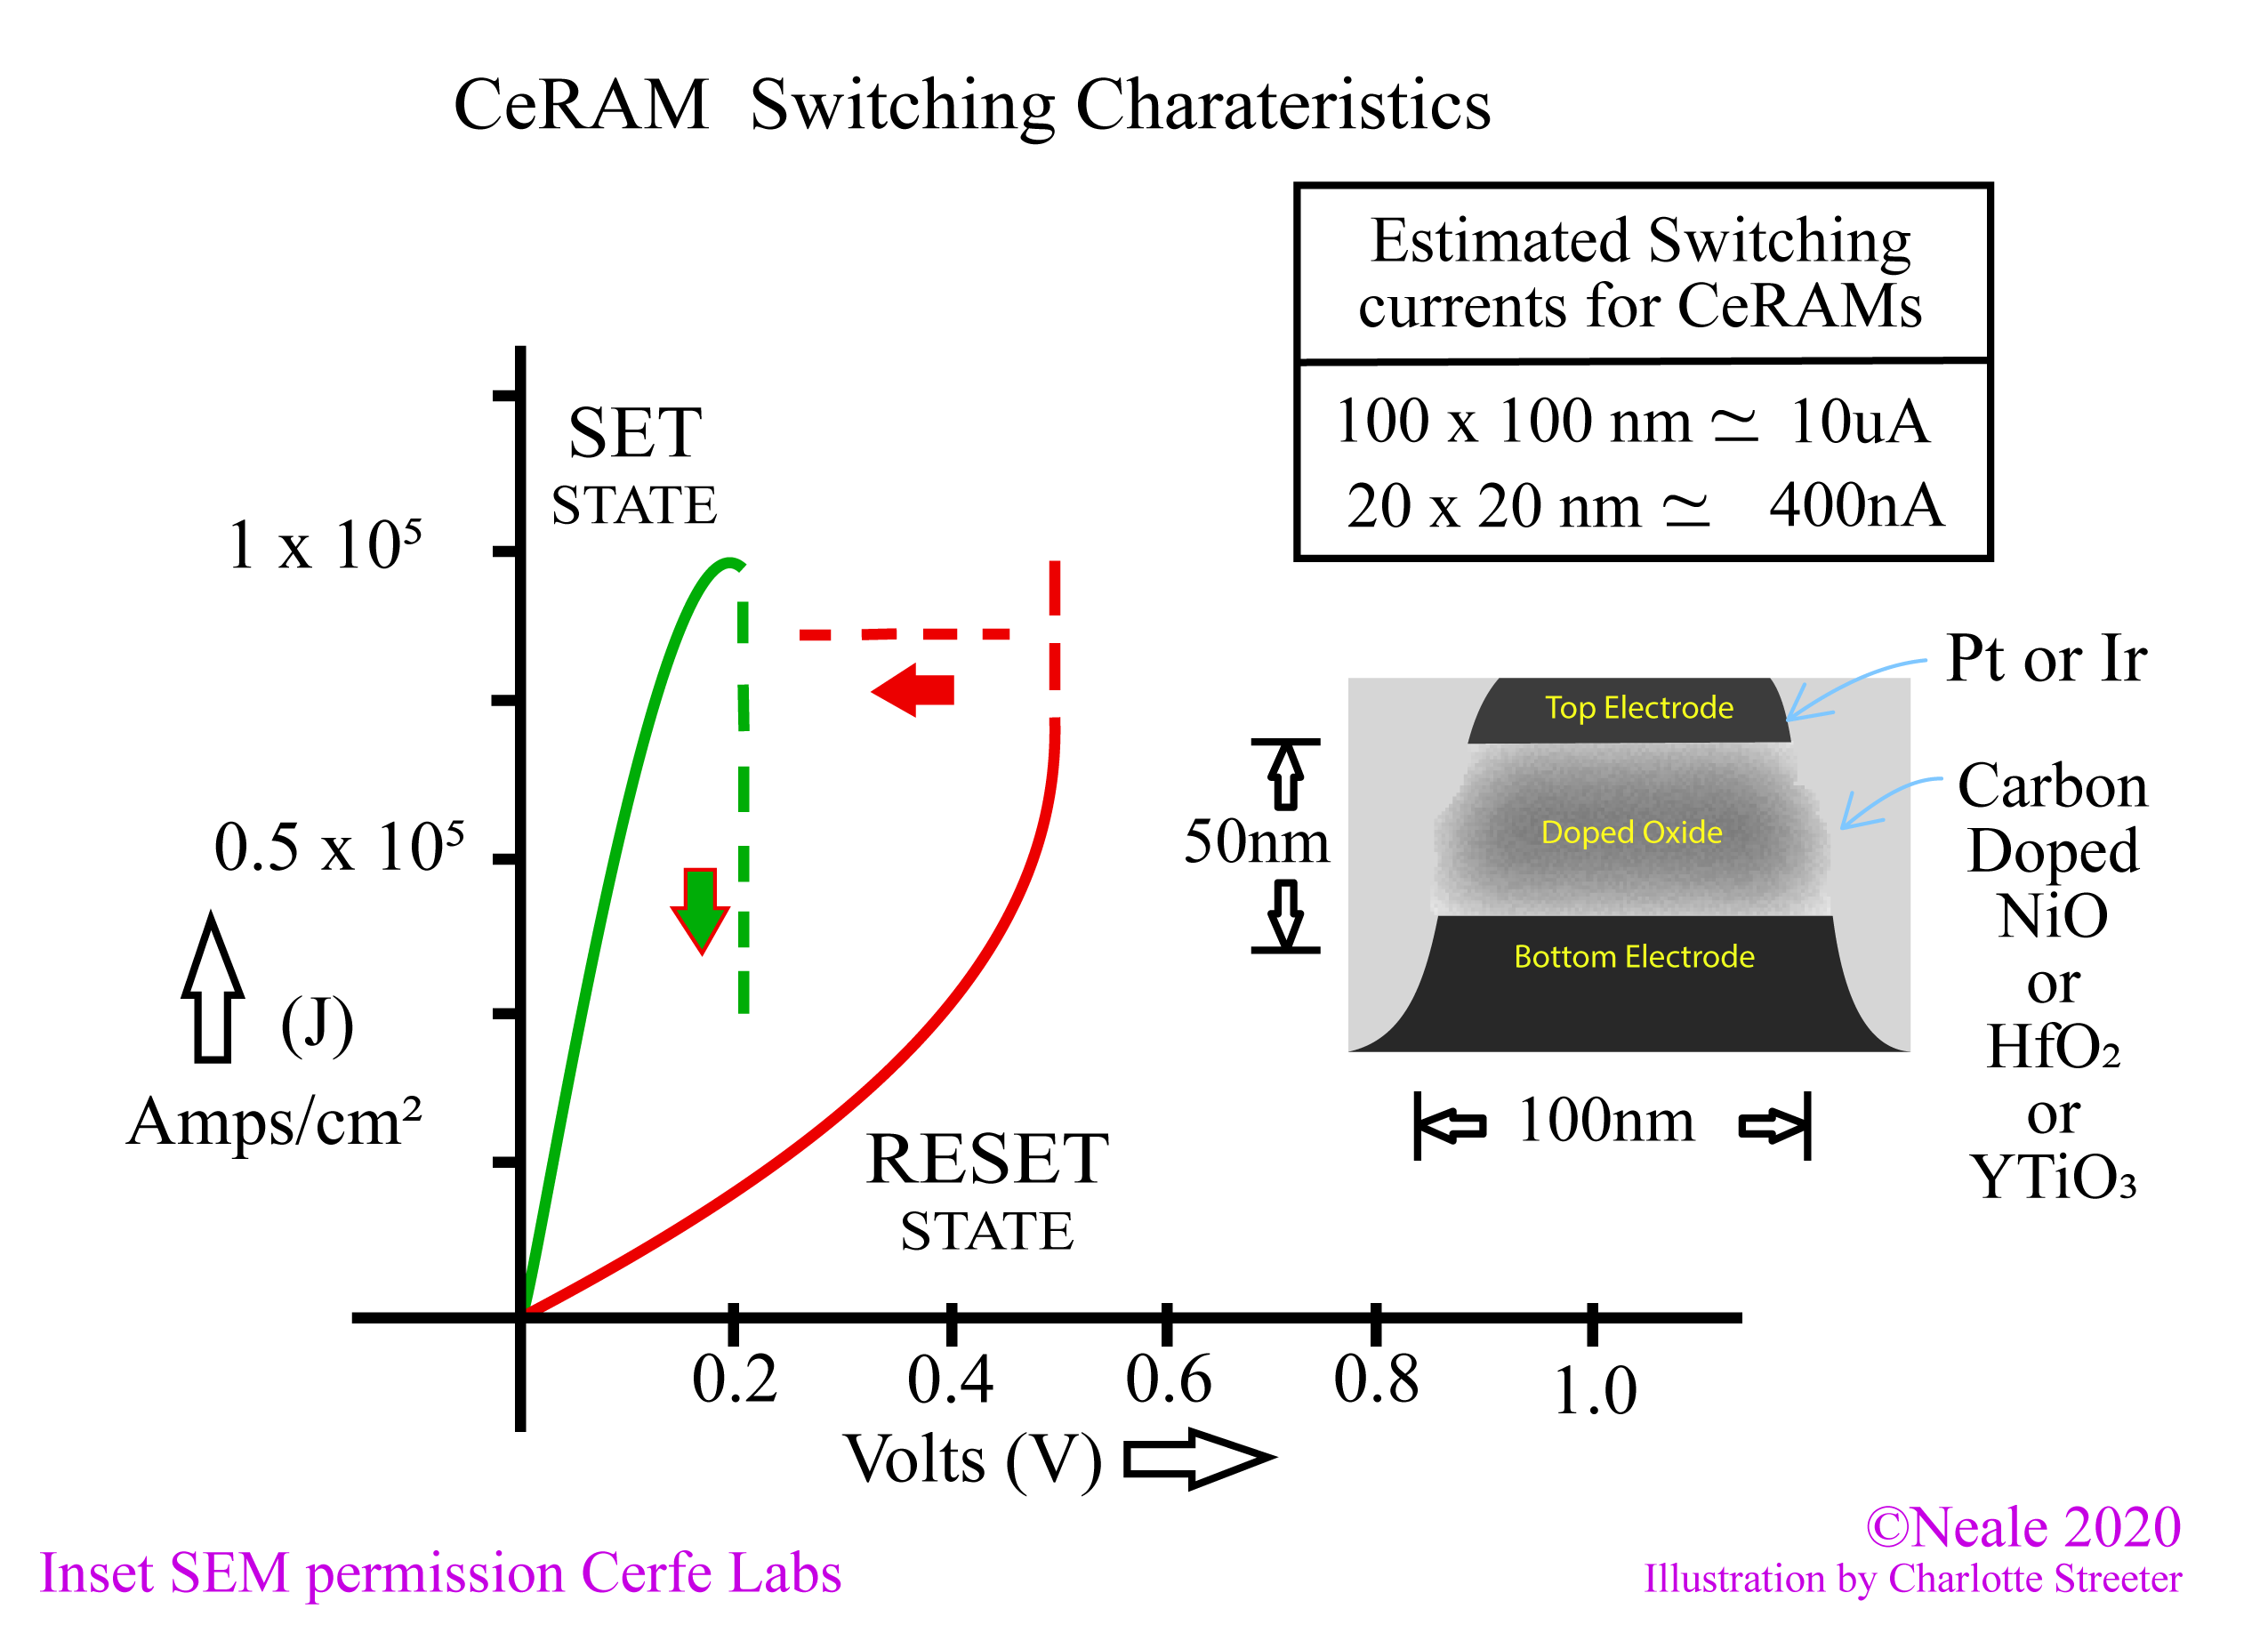 I-V curves for CeRAM bit cell and insert electron microscope view of the cell's profile